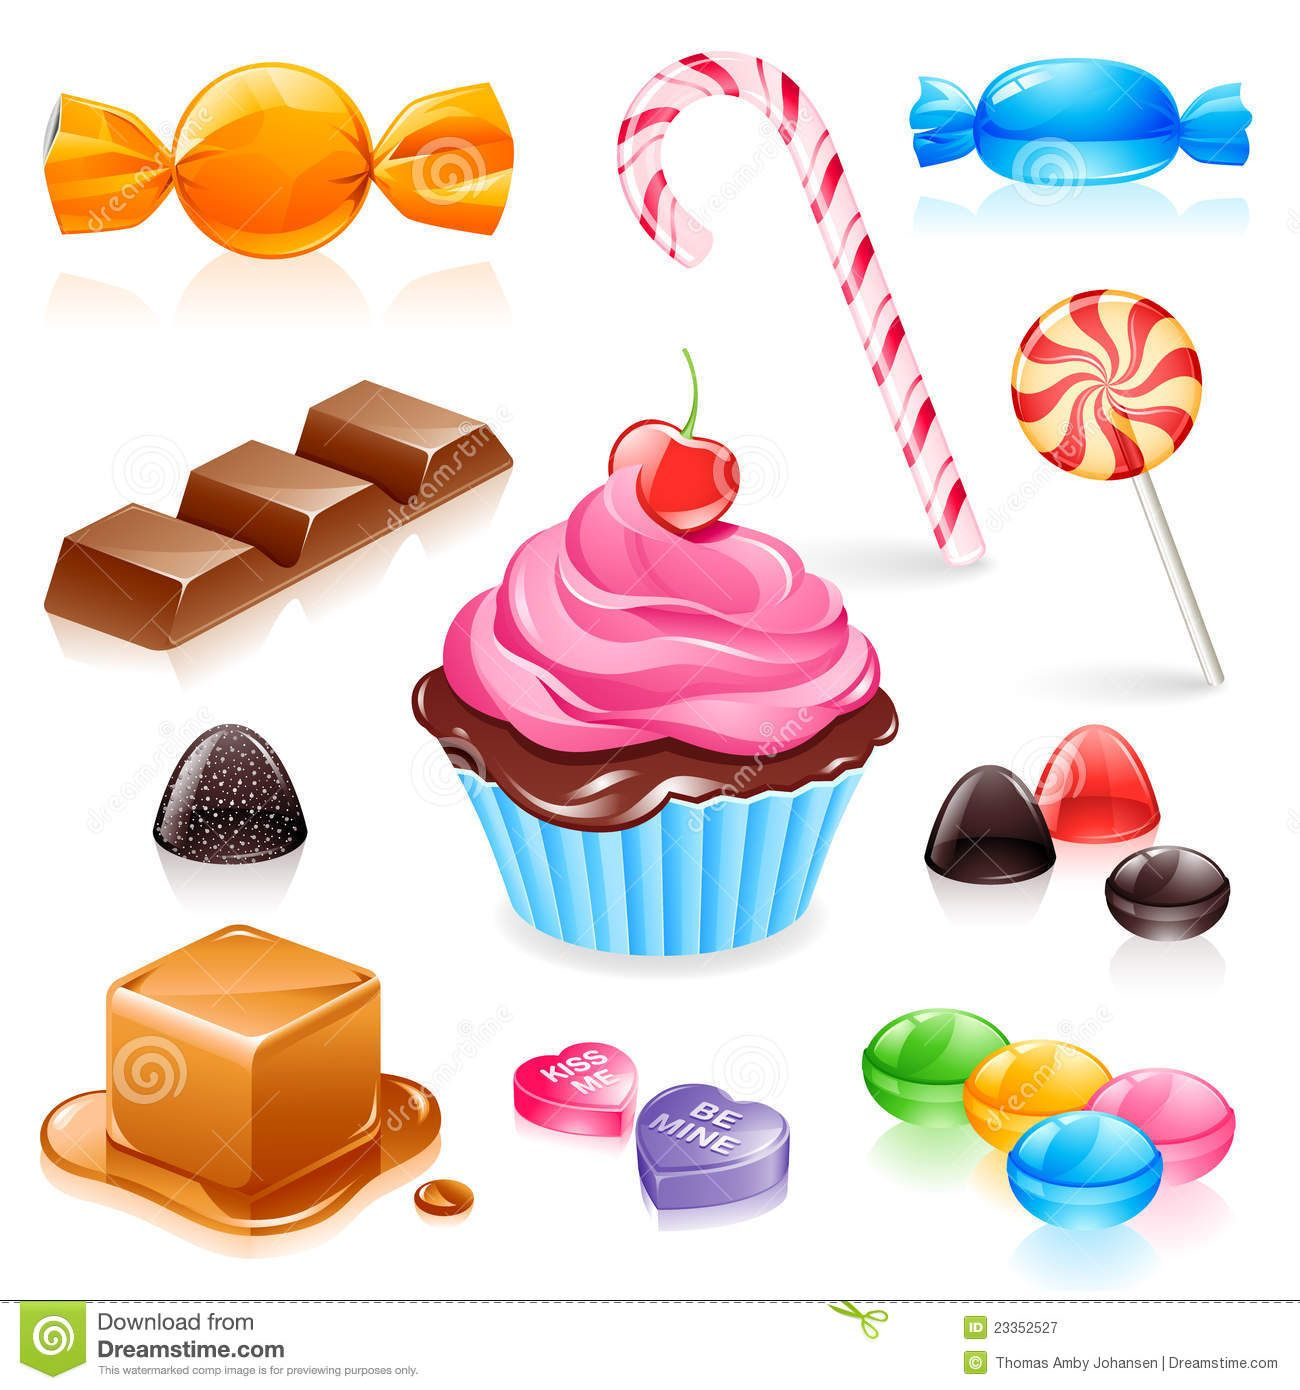 candy vector Google Search Candy, Caramel, Sweet candy